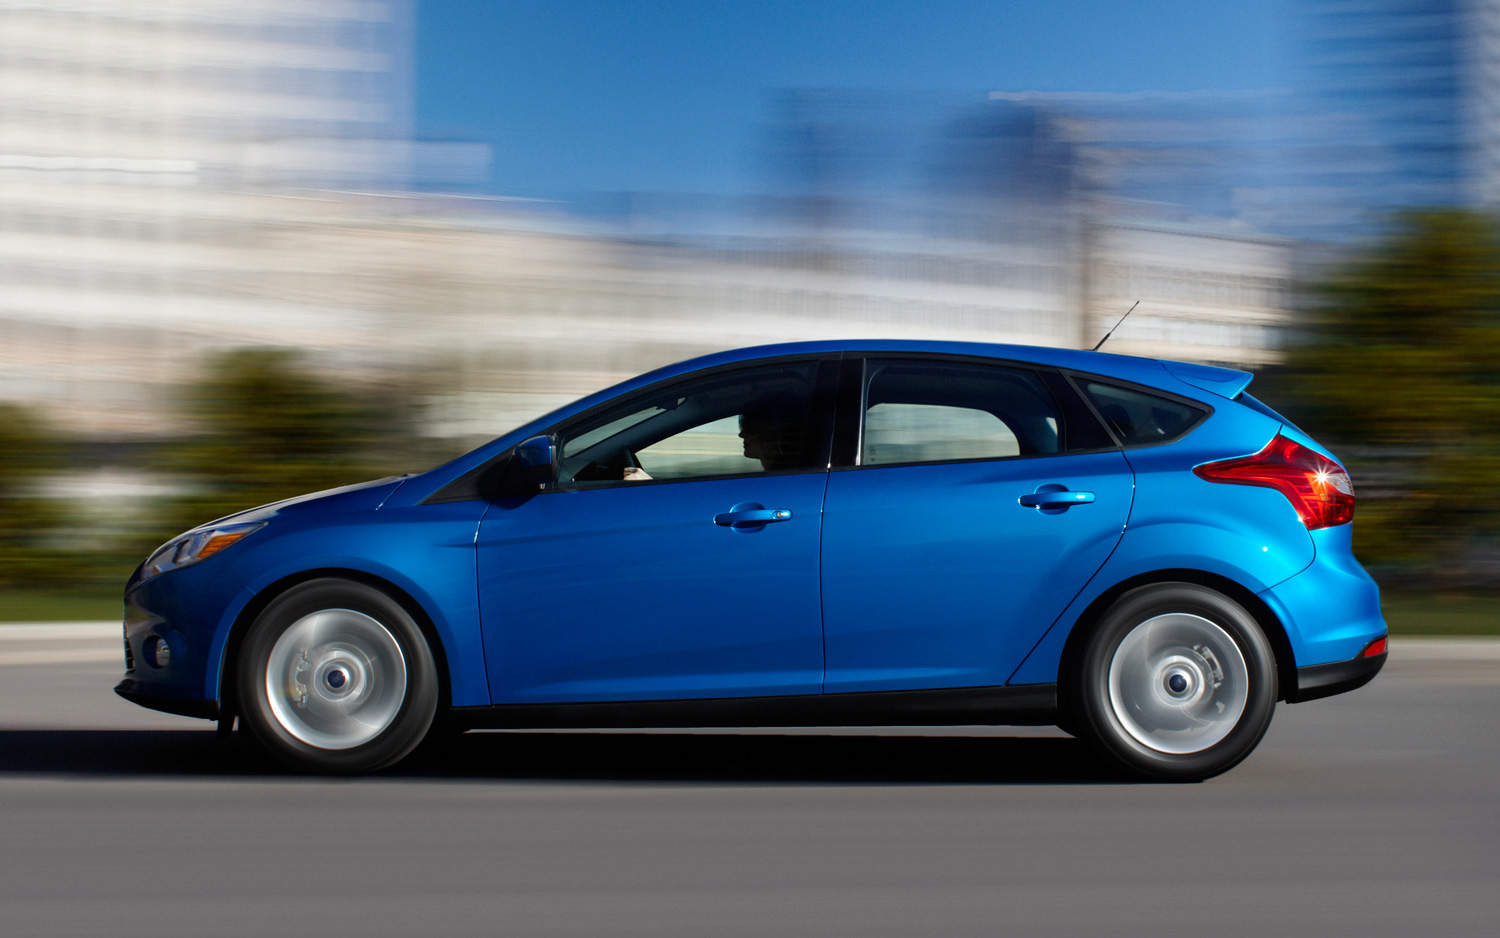 ford focus hatchback 2014 tecnolog a dise o y elegancia lista de carros. Black Bedroom Furniture Sets. Home Design Ideas